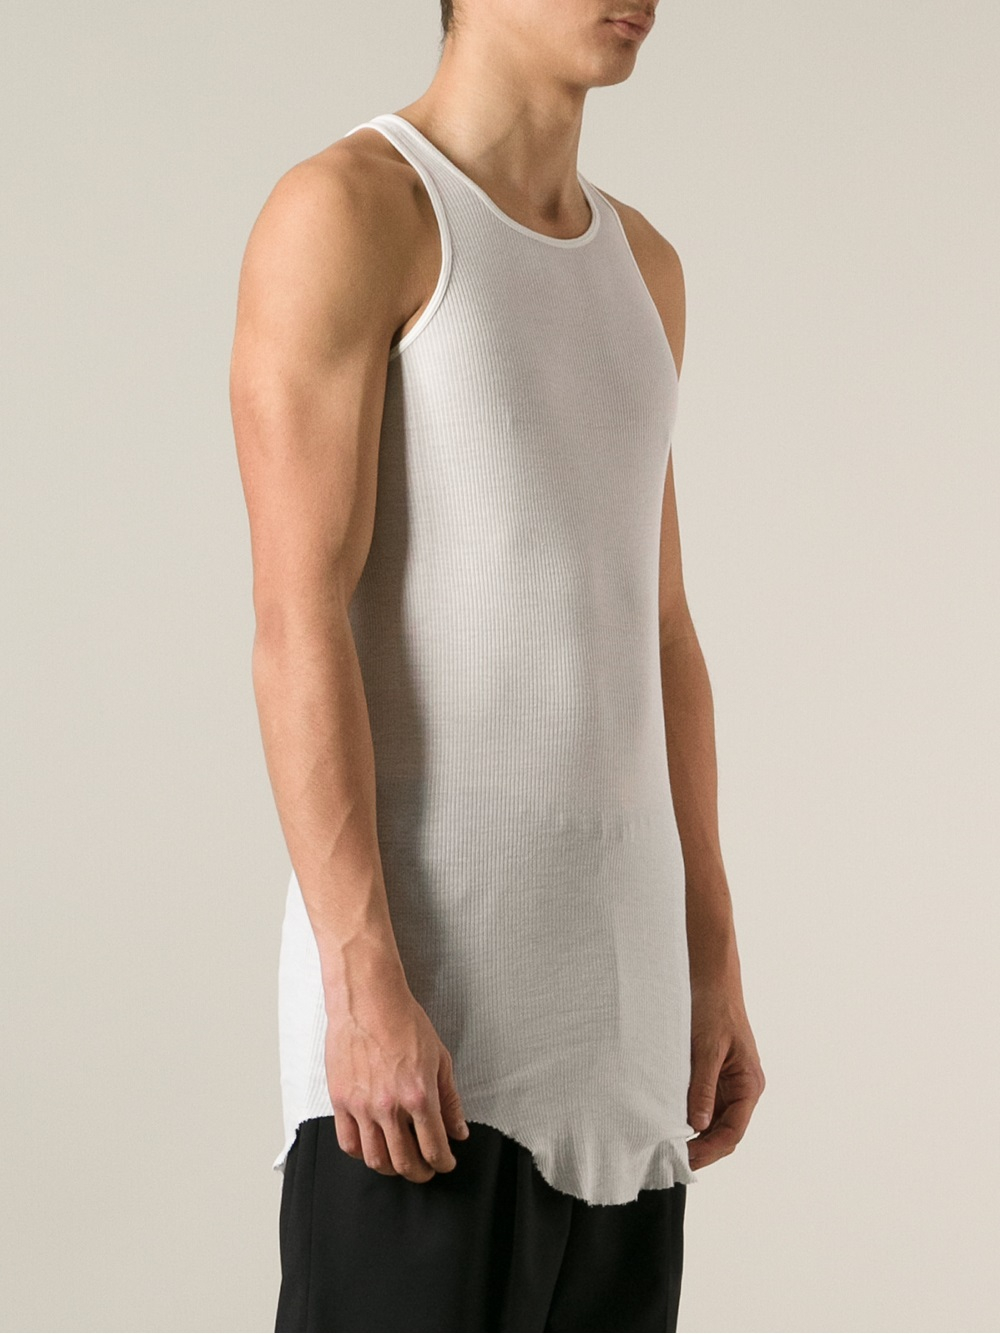 7ac9551ba8034 Lyst - Rick Owens Ribbed Tank Top in White for Men